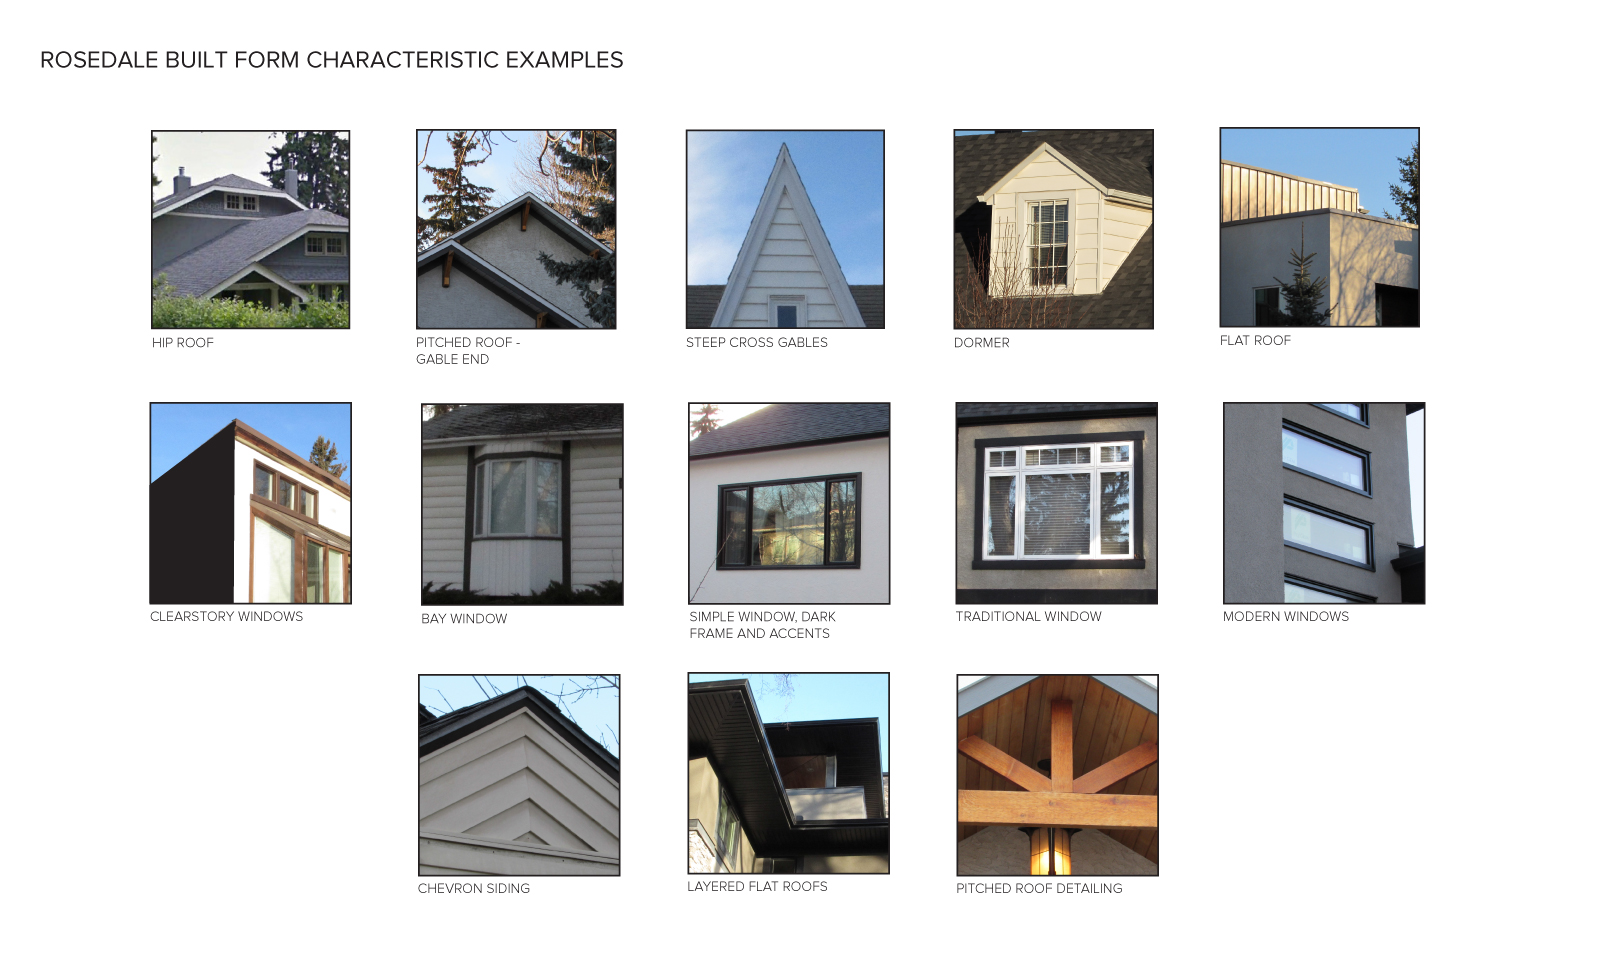 Images of built form characteristics found in Rosedale, including roofing and windows.